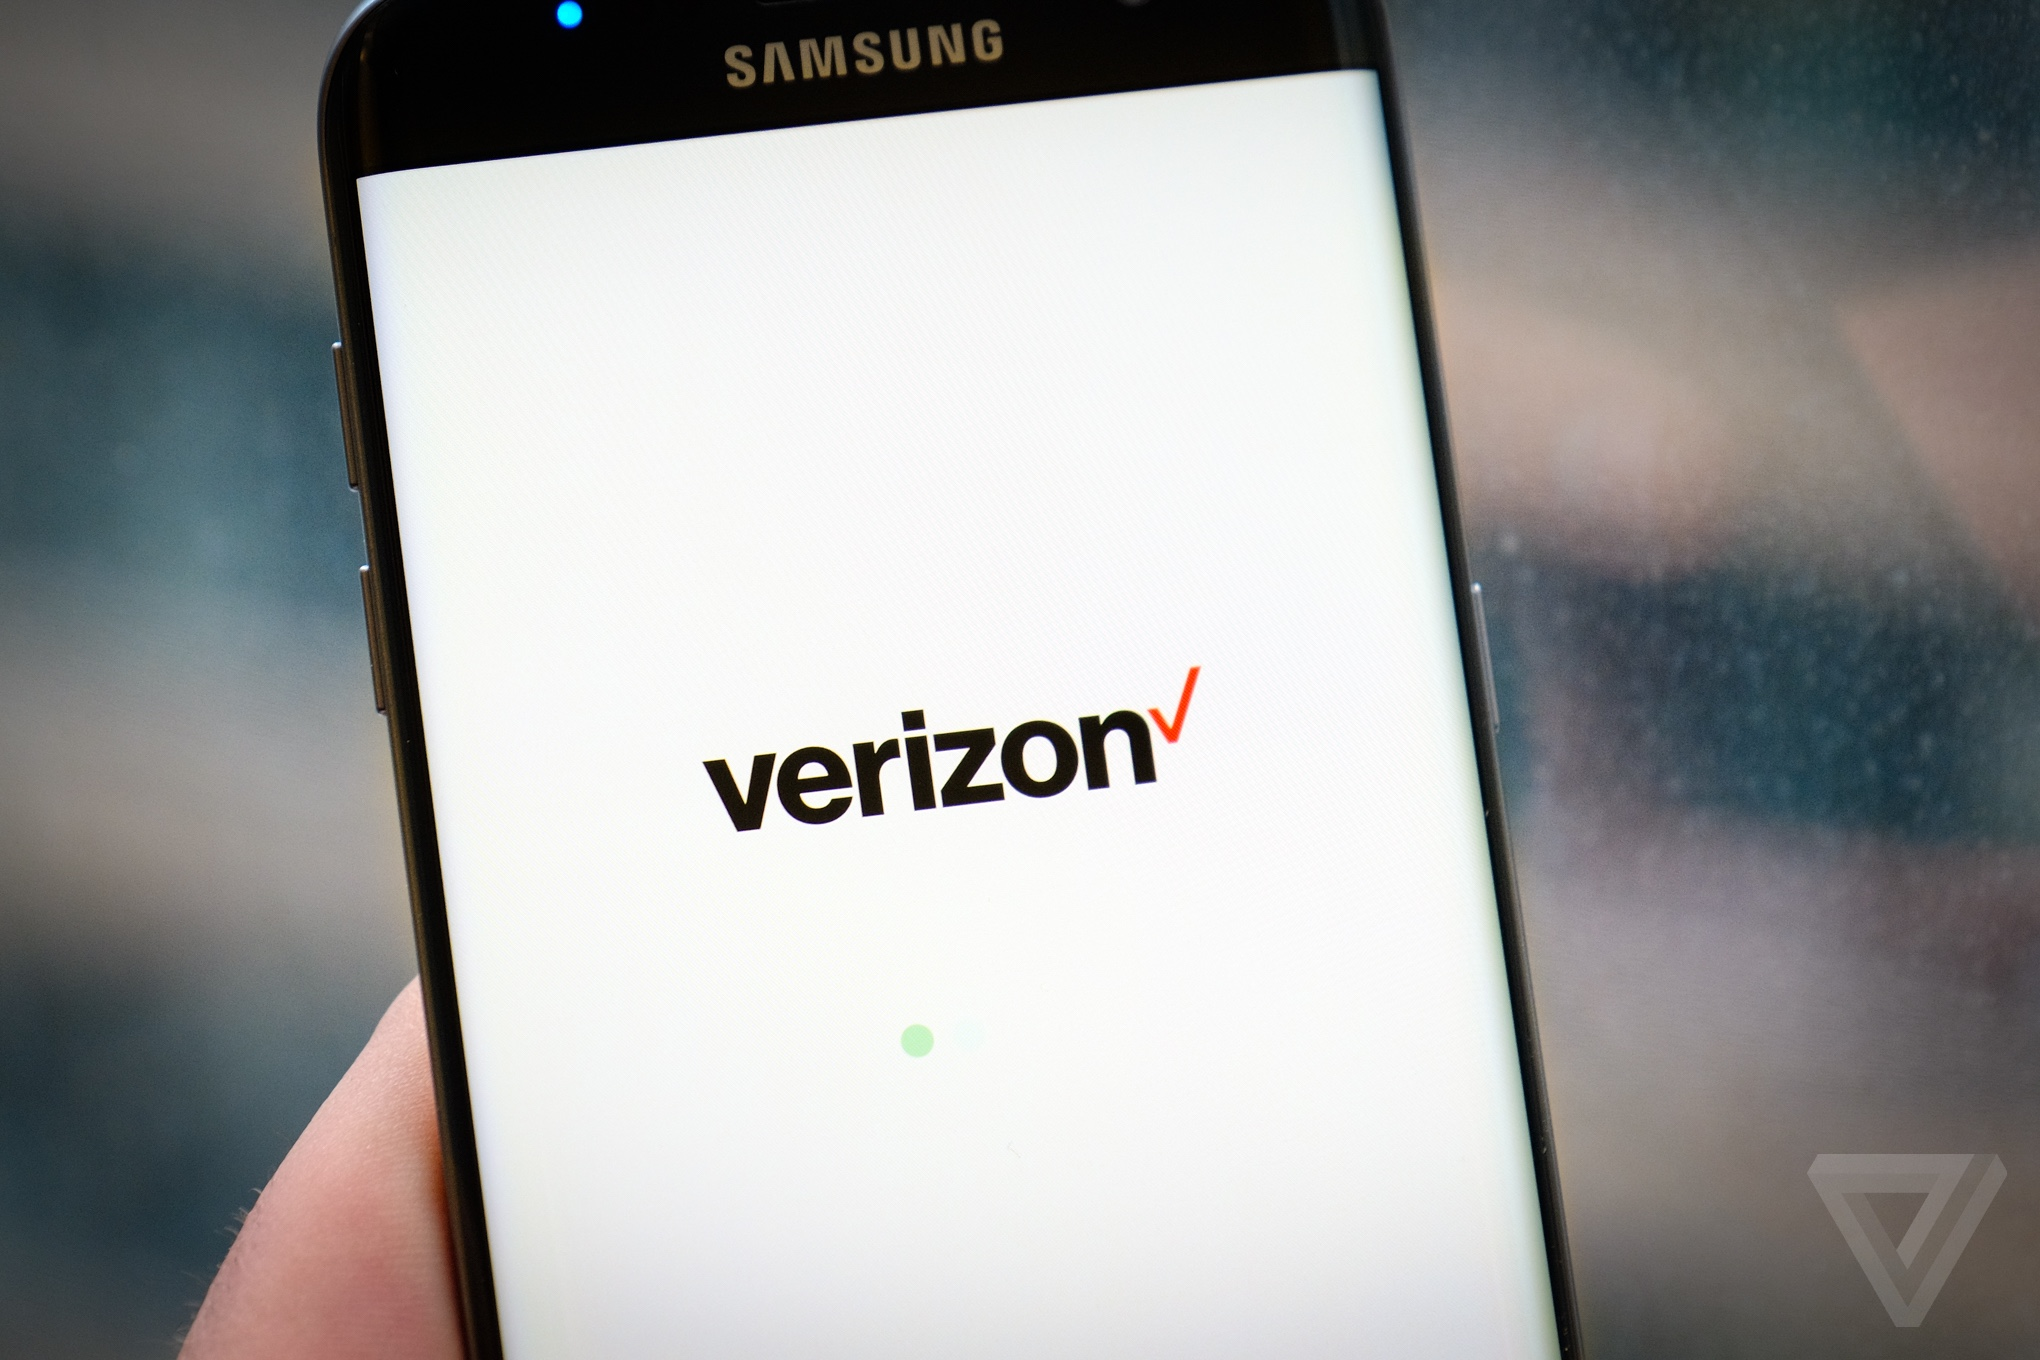 Verizon will come fix your cracked phone screen at home, but